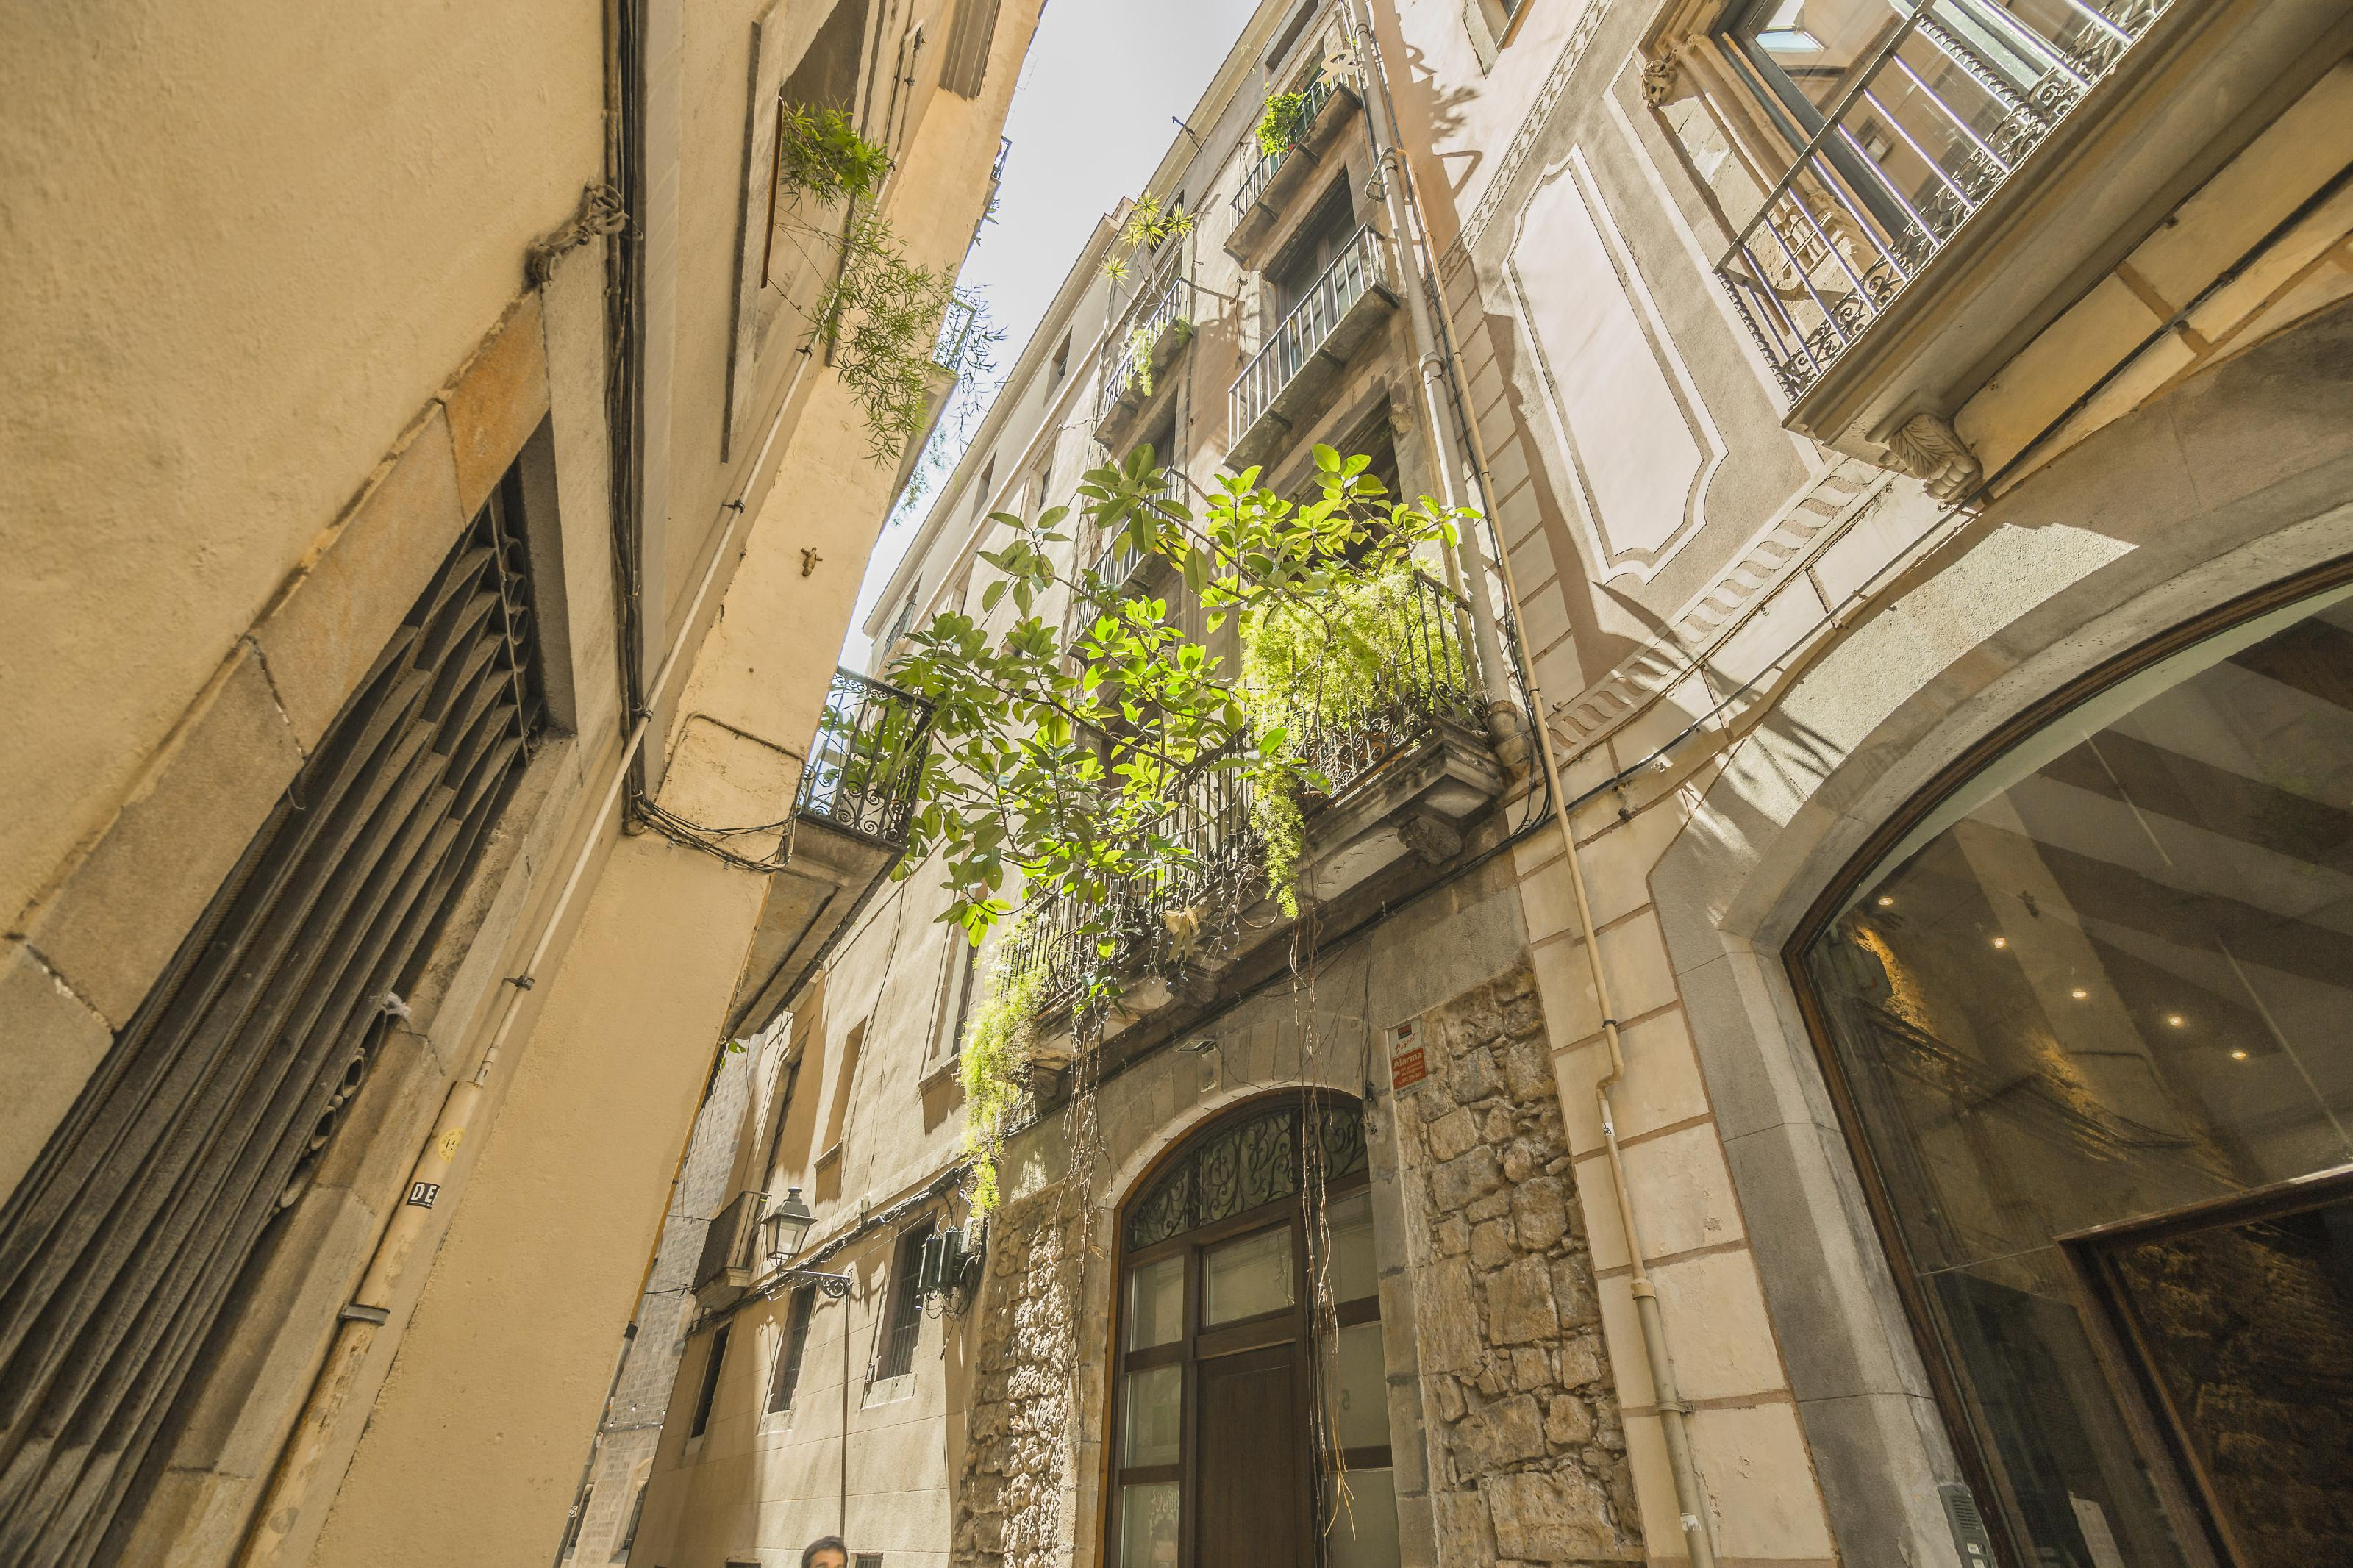 241111 Flat for sale in Ciutat Vella, Barri Gótic 6